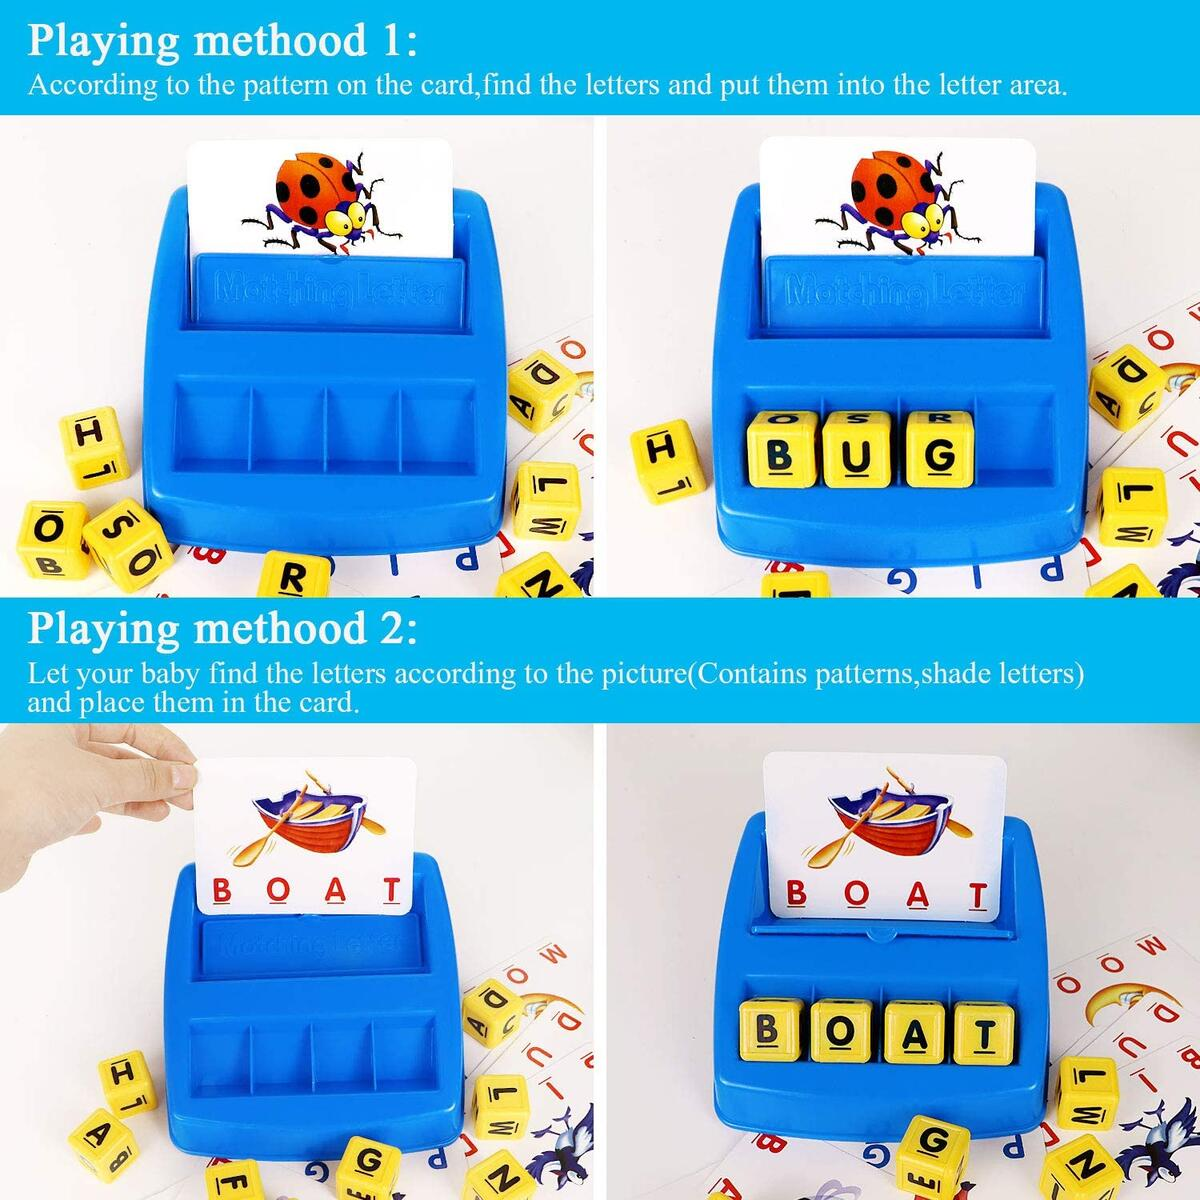 Matching Letter Game, Alphabet Reading & Spelling, Words & Objects, Number & Color Recognition, Educational Learning Toy for Preschooler, Kindergarten 3+ Years Old Kids Boys Girls Toddlers (Style B)